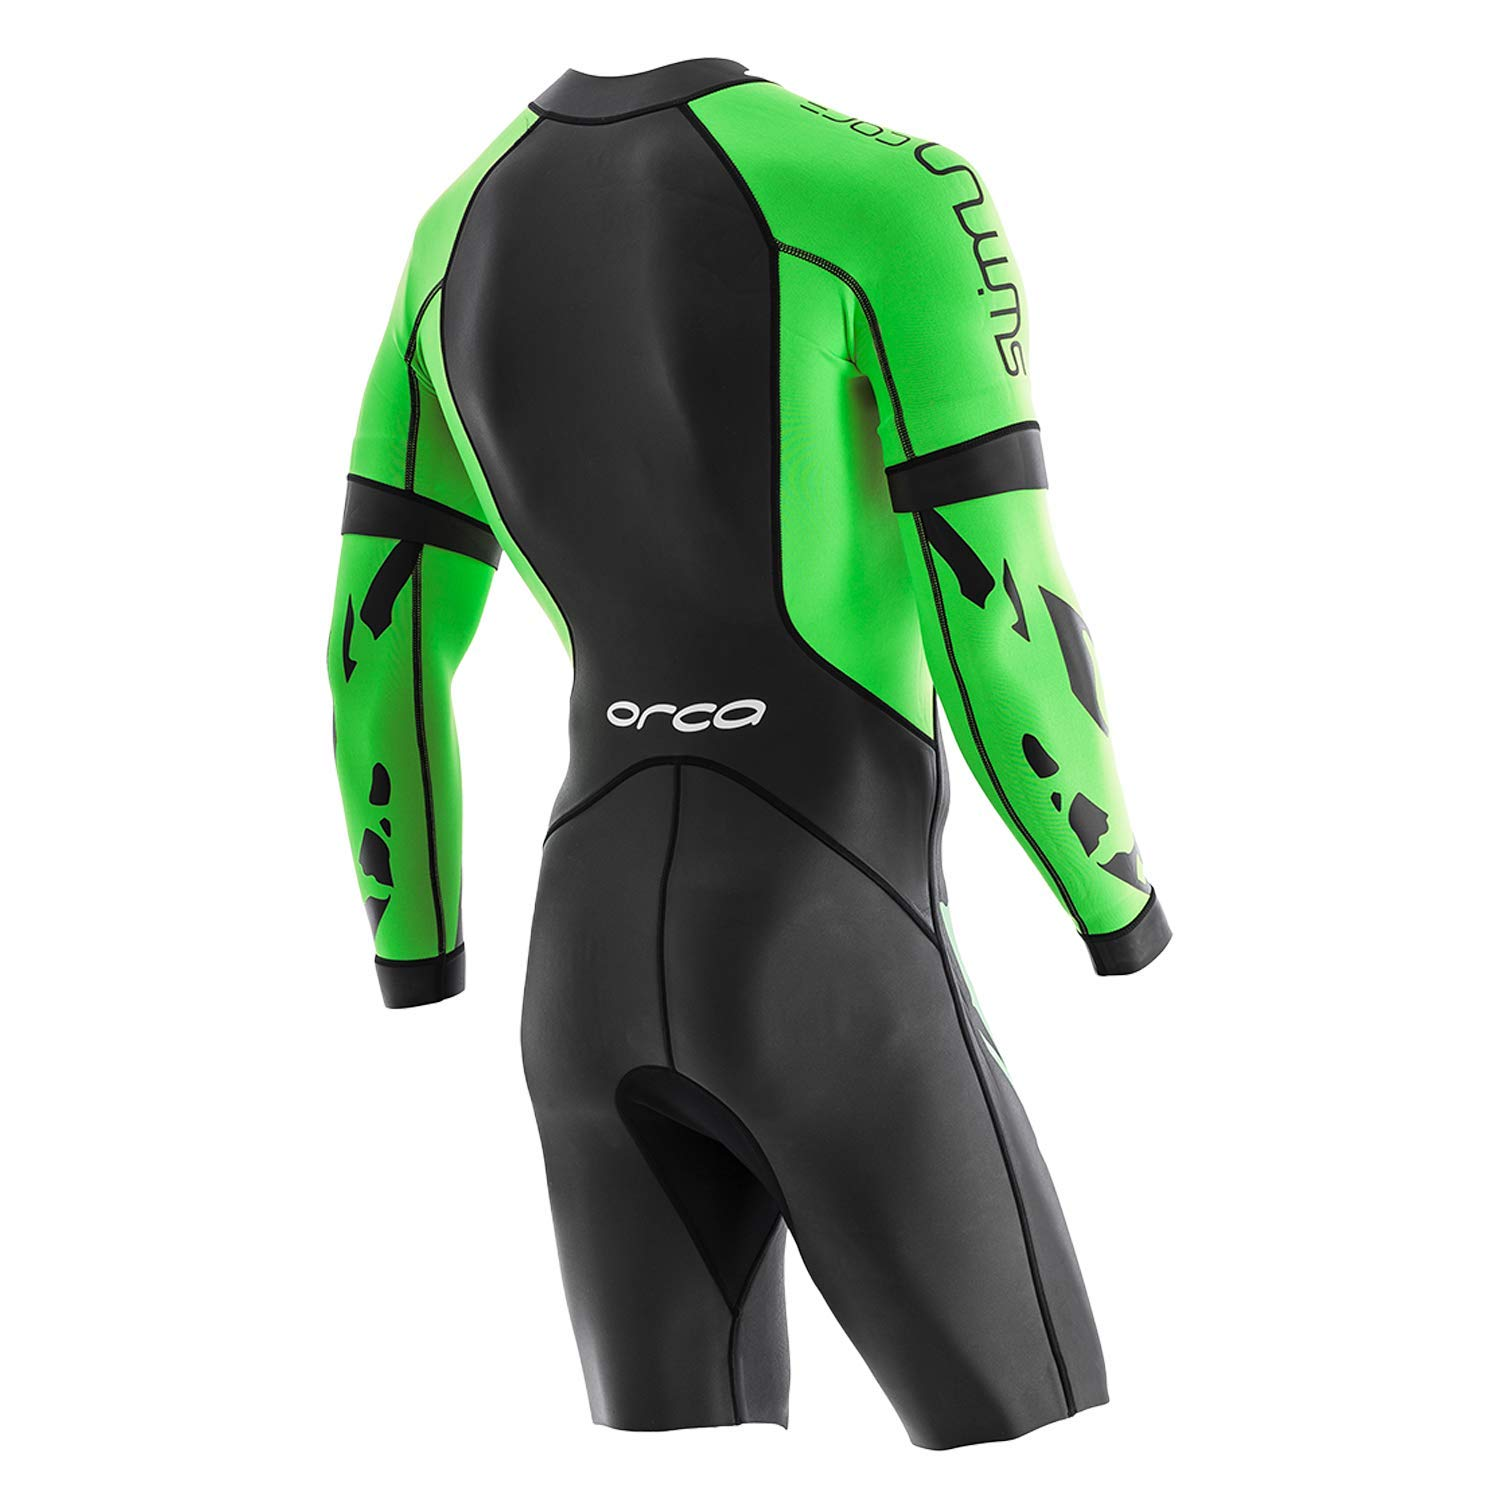 ORCA SwimRun Core Mens One Piece Wetsuit (7) by ORCA (Image #3)